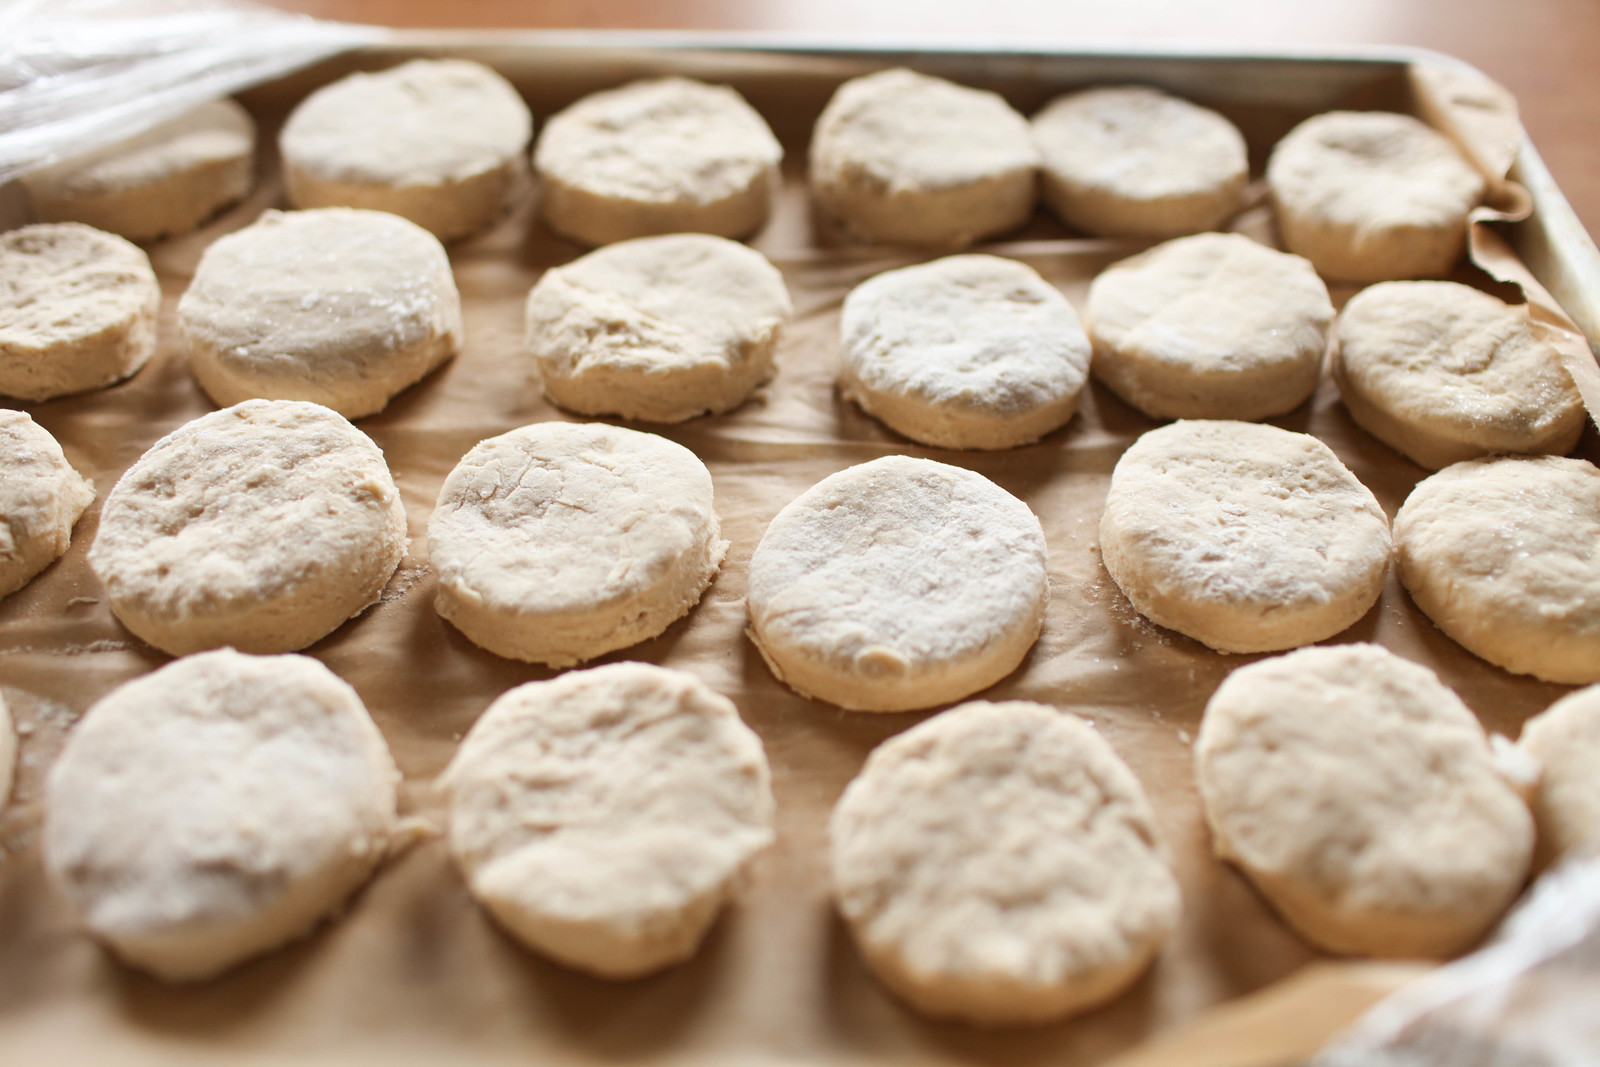 freezer biscuits for communal table